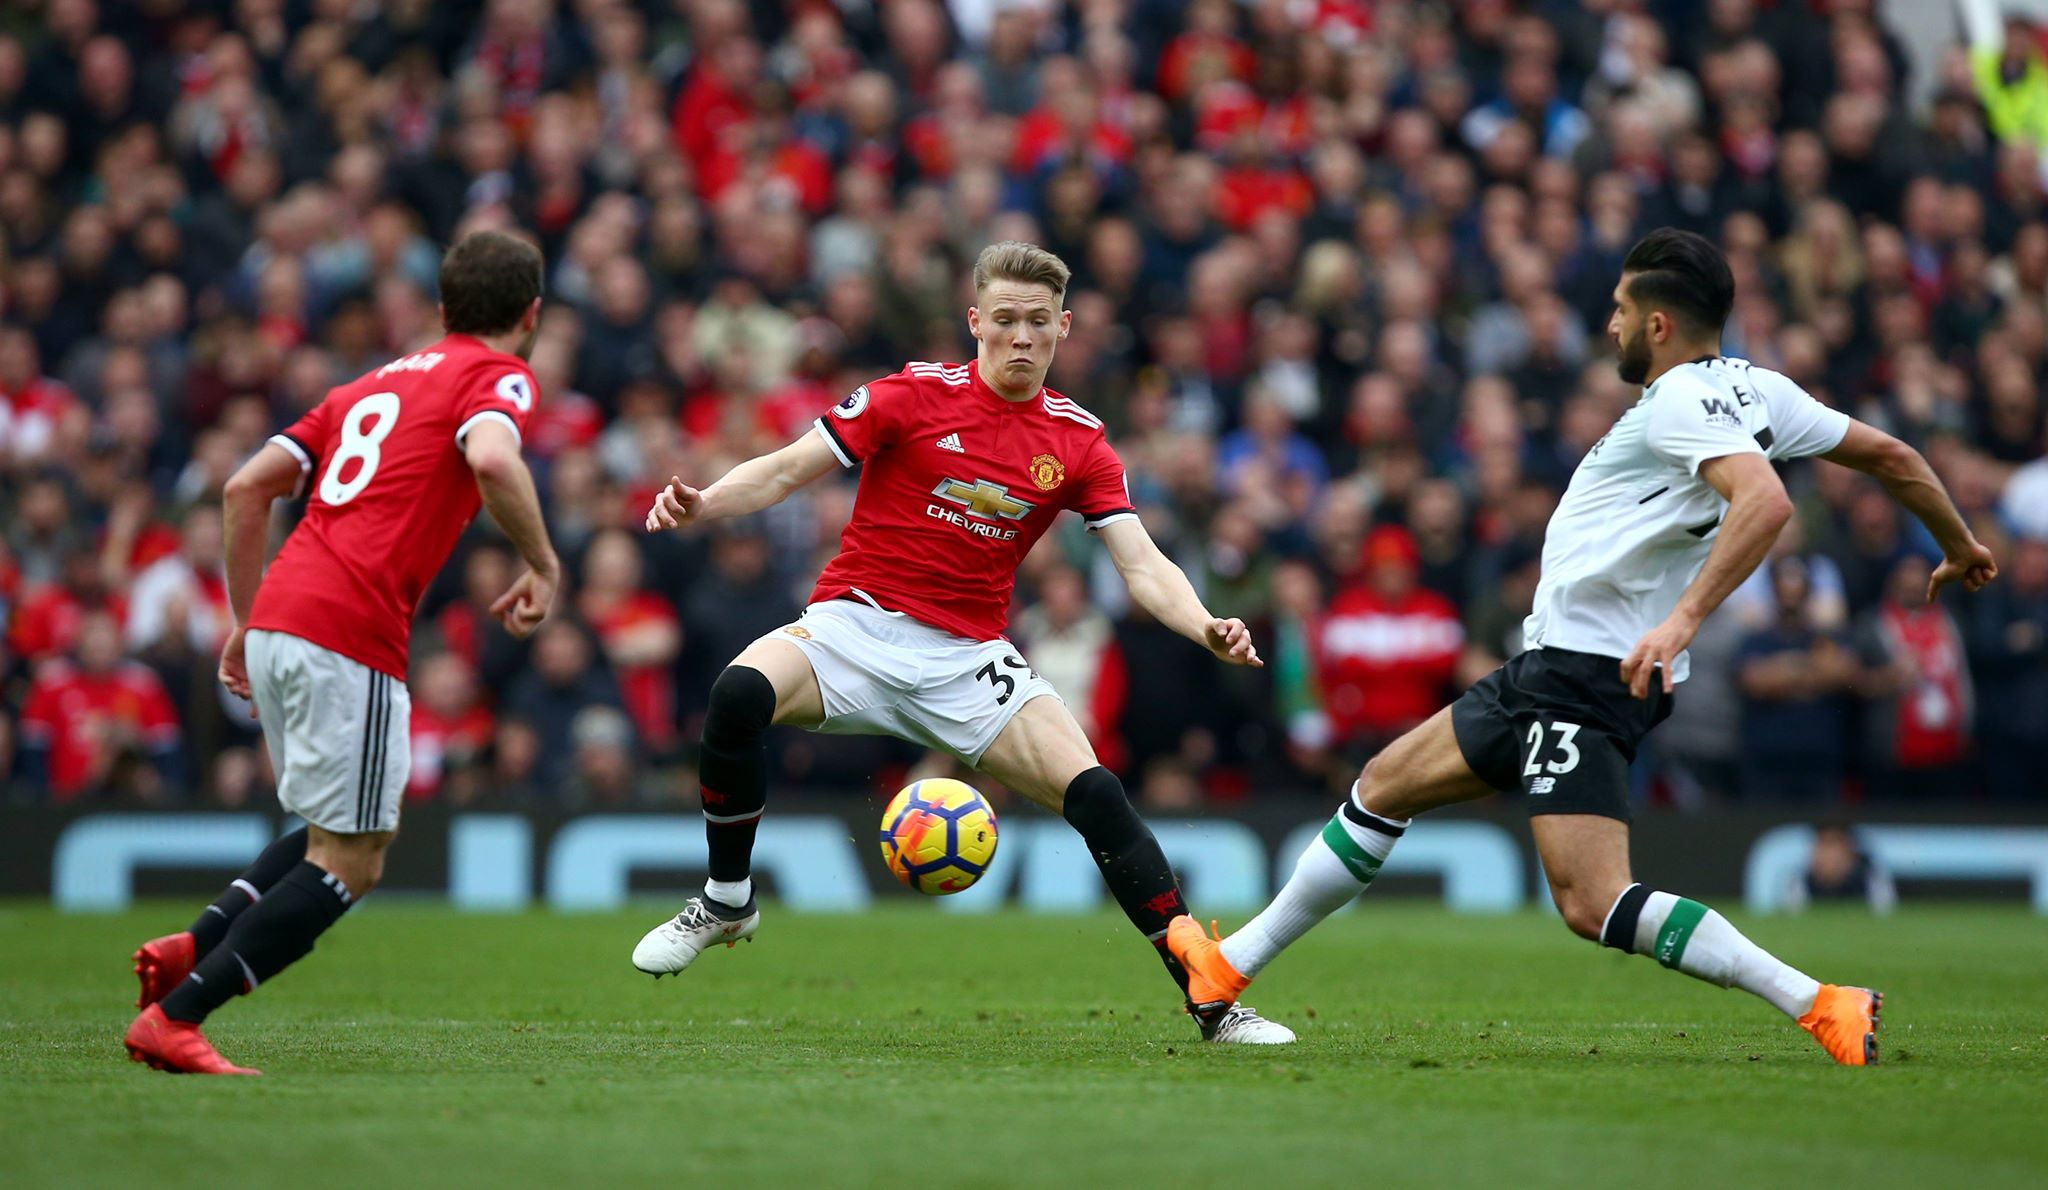 McTominay in action for United. Image: PA